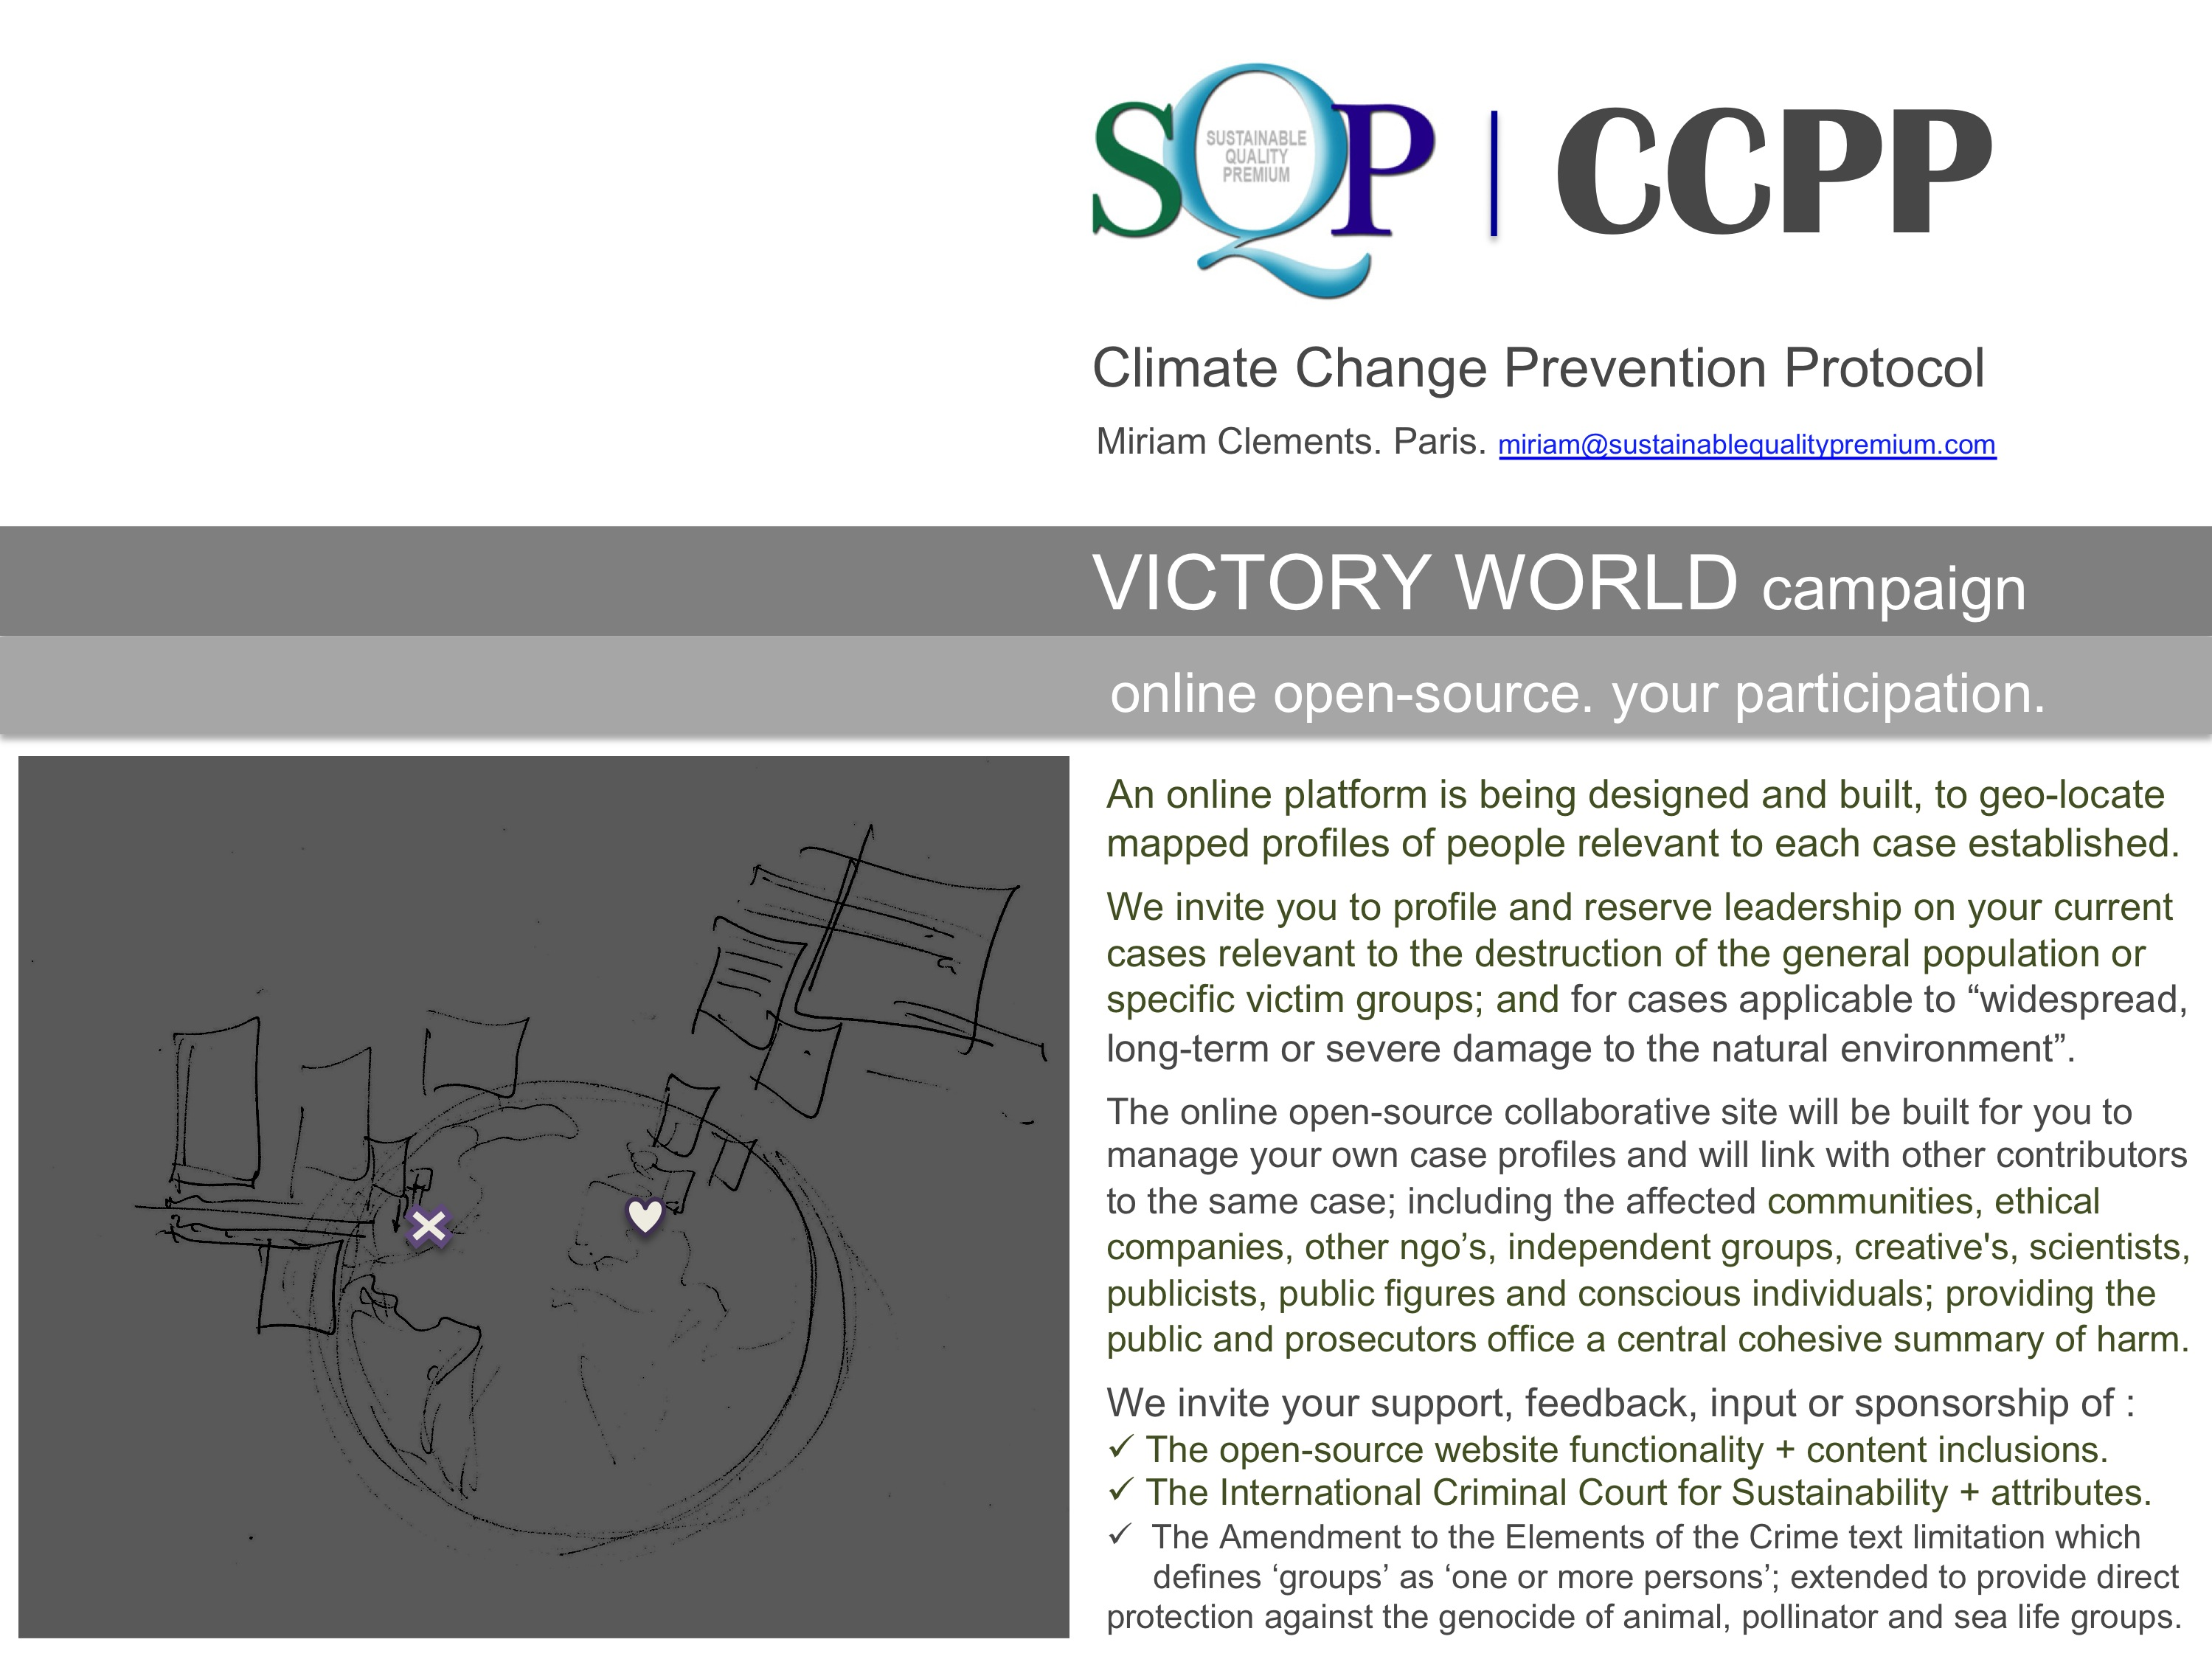 SQP CCPP. open source participation.